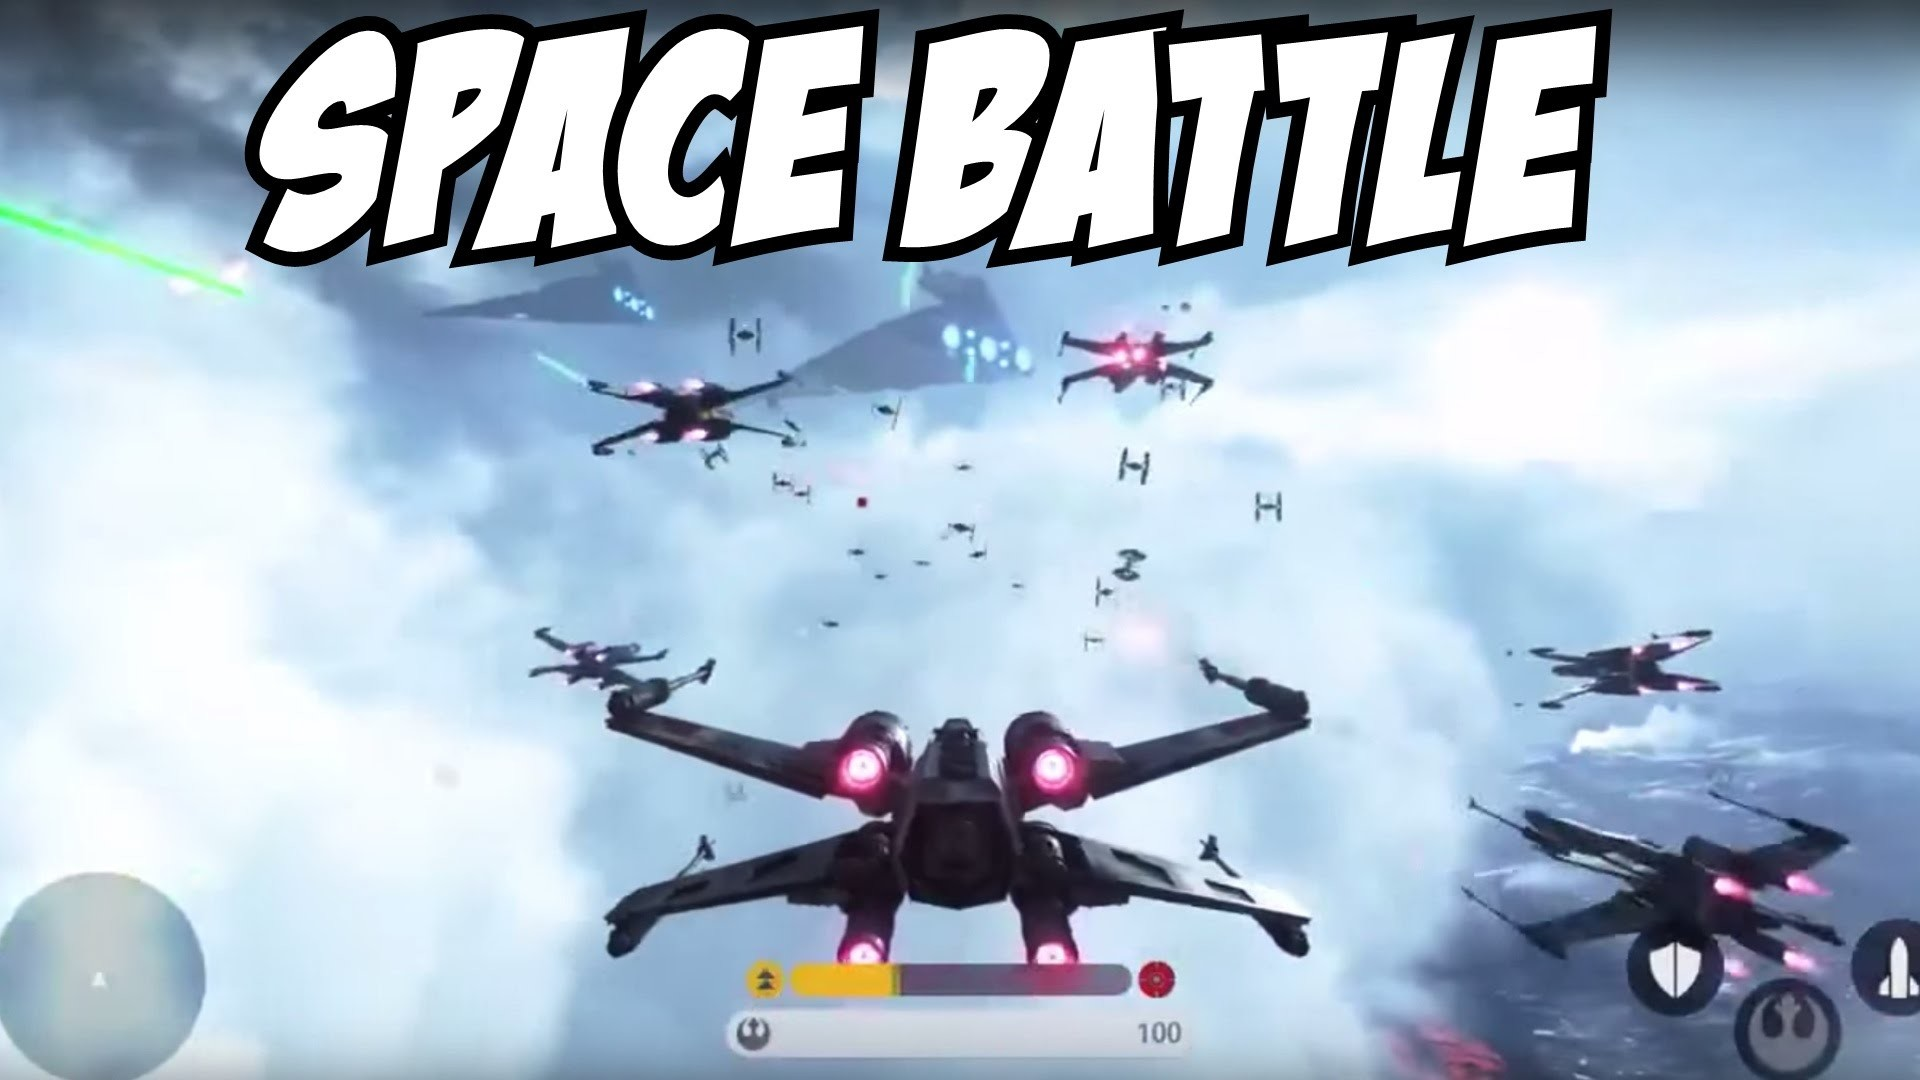 Star Wars Battlefront 3 Gameplay Fighter Squadron Mode Space Battle?  Trailer PS4 Xbox One PC – YouTube